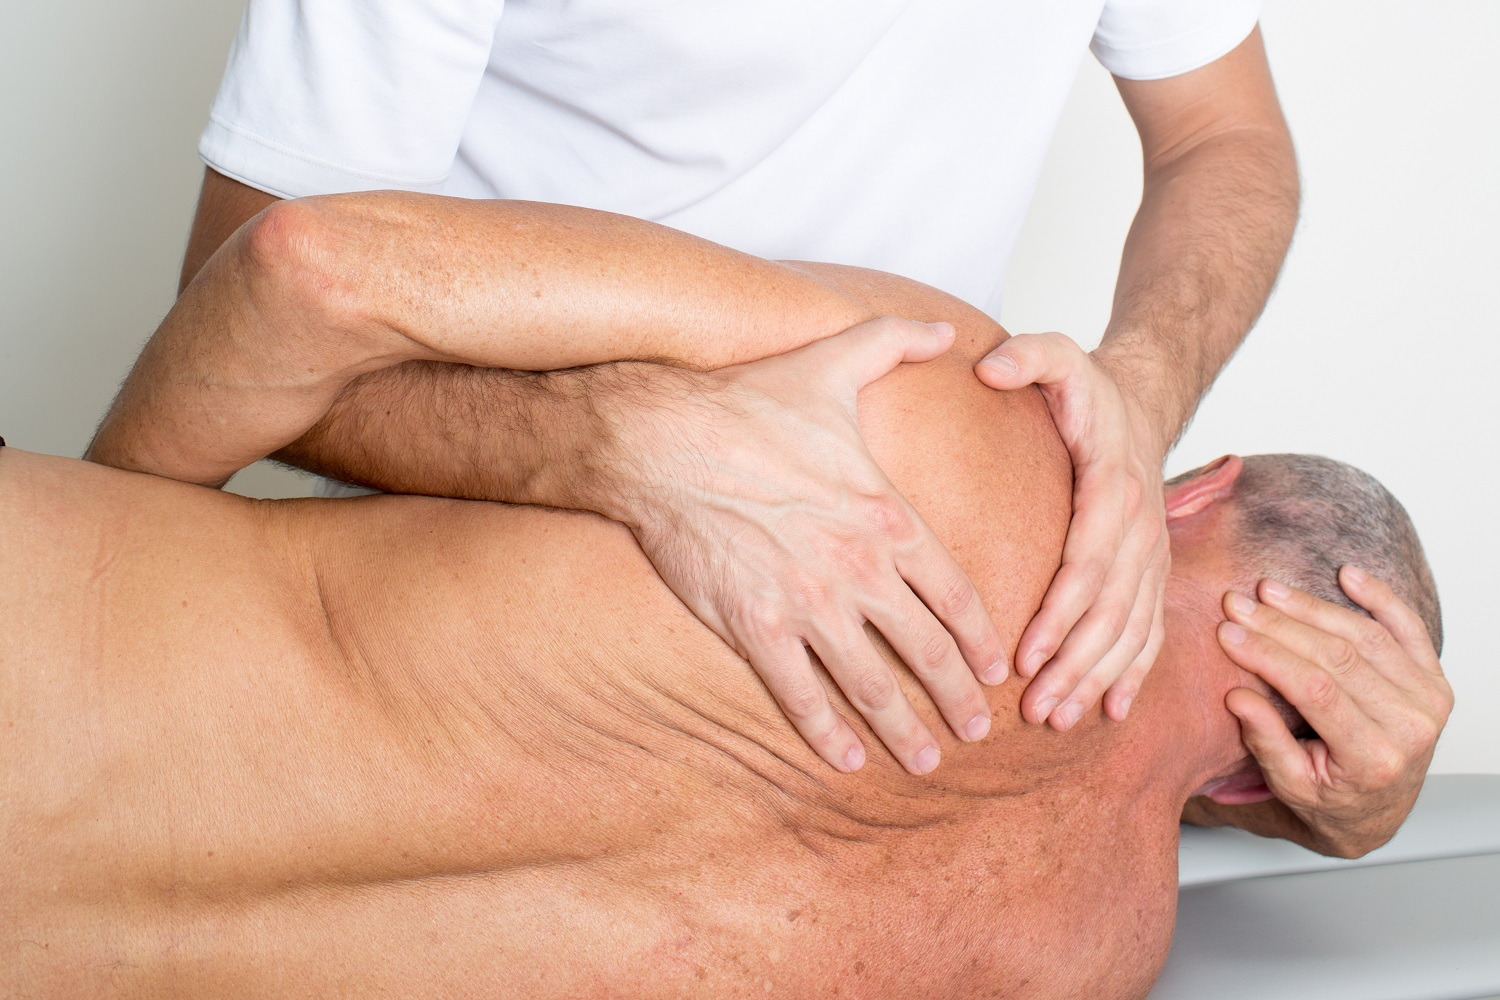 What is Myofascial Release Therapy & Its Benefits?